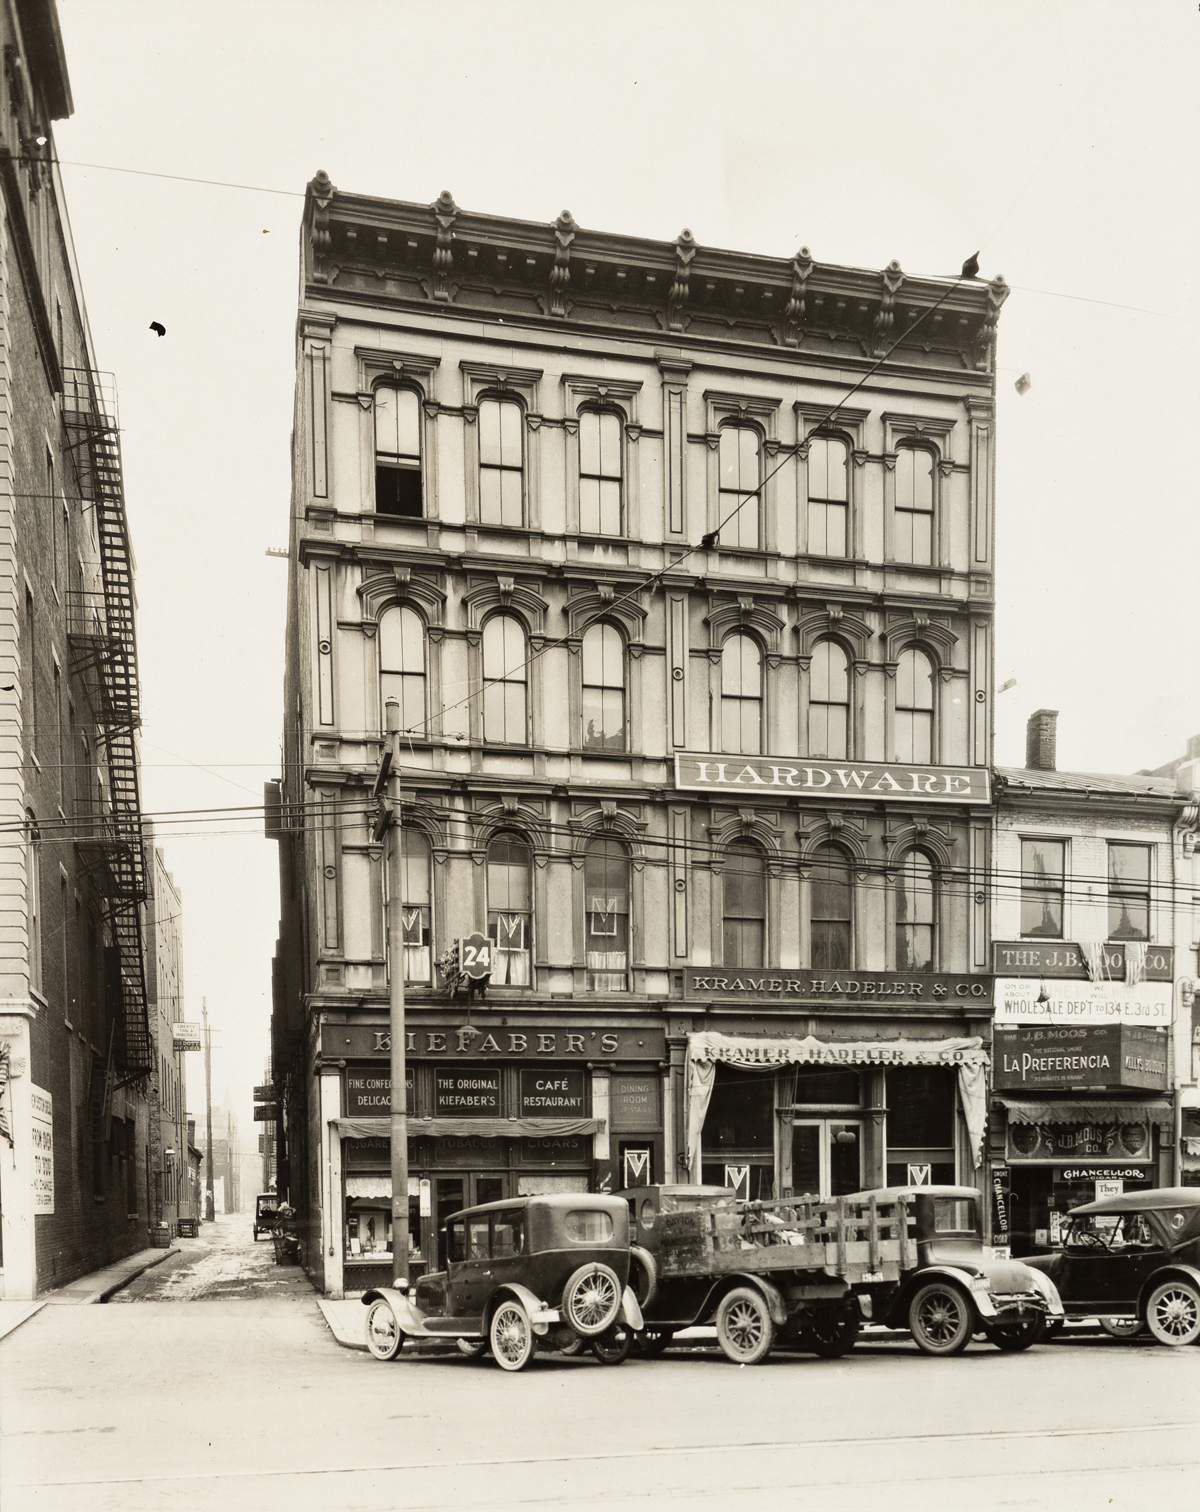 WILLIAM MAYFIELD (1896-1974) A selection of 6 photographs of Dayton, Ohio.